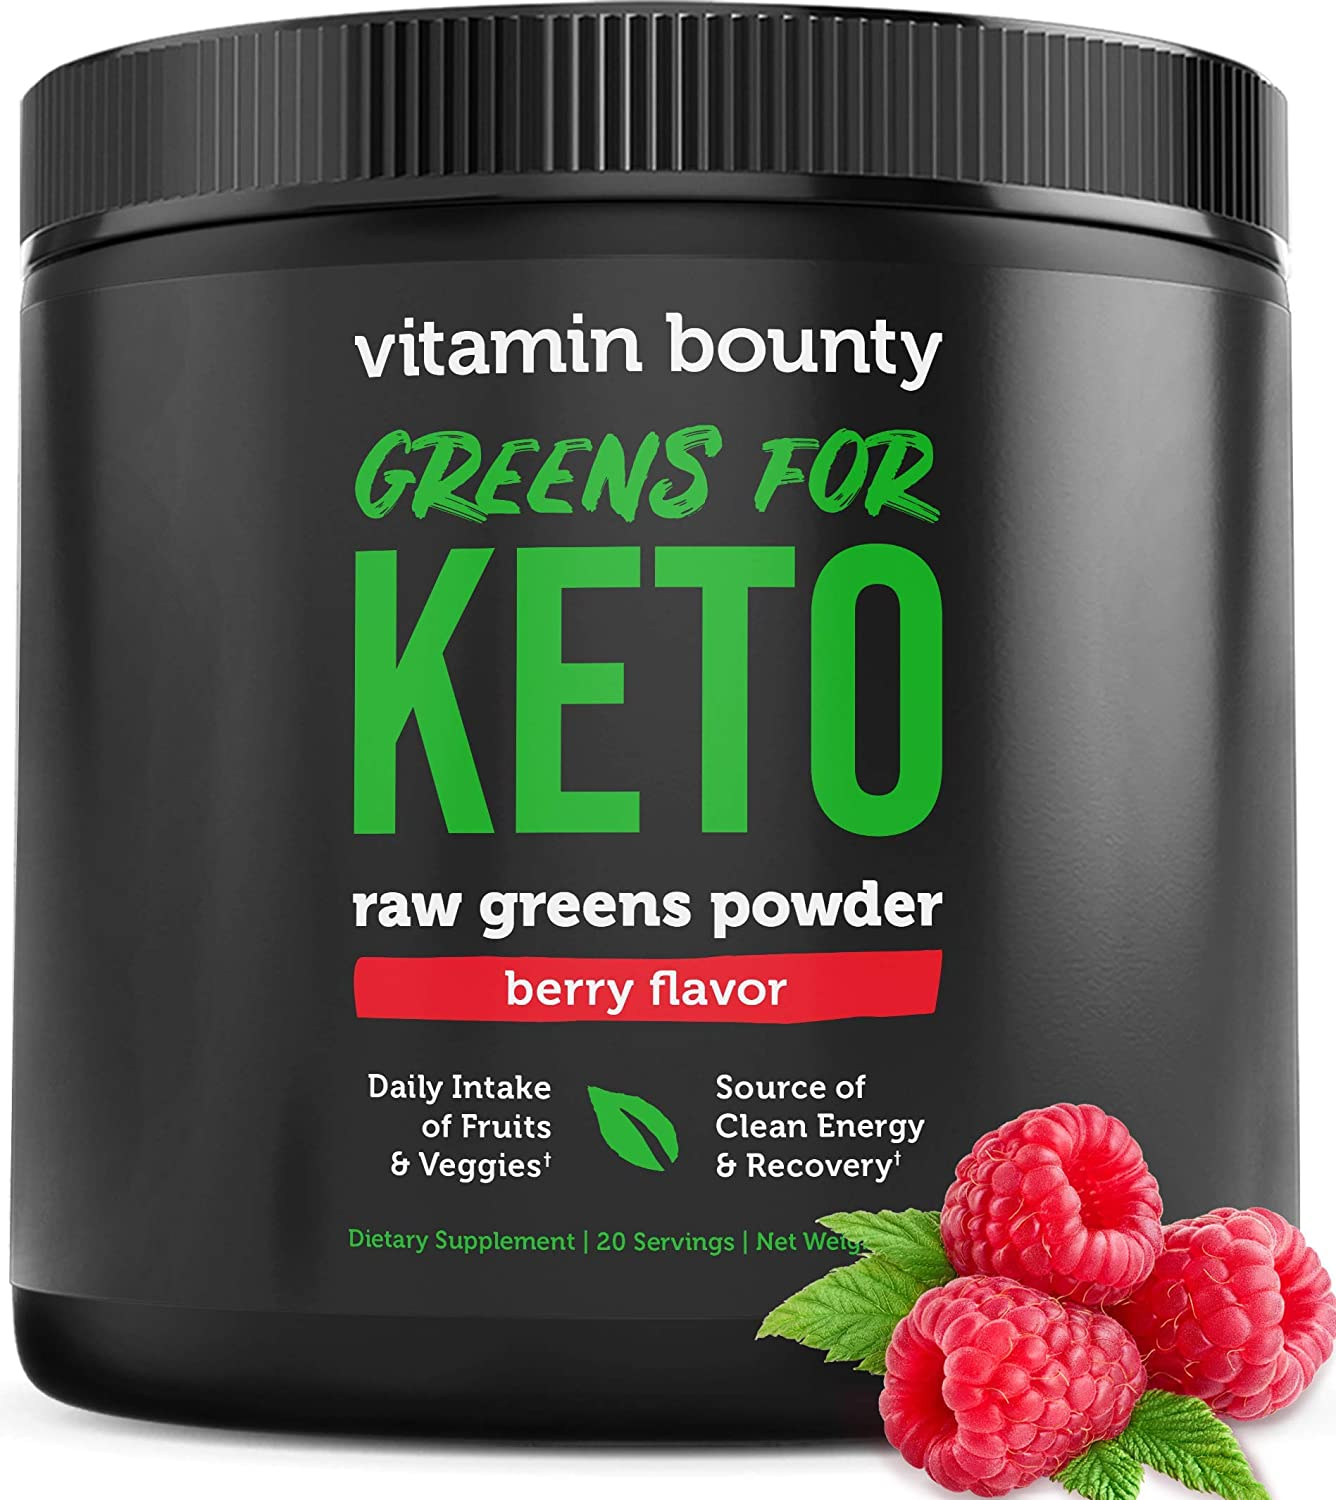 Greens for Keto - Berry Flavor Raw Greens Powder - only 3g net Carbs per Serving - Plant Based Food Fruit & Vegetable Blend - Vitamin Bounty